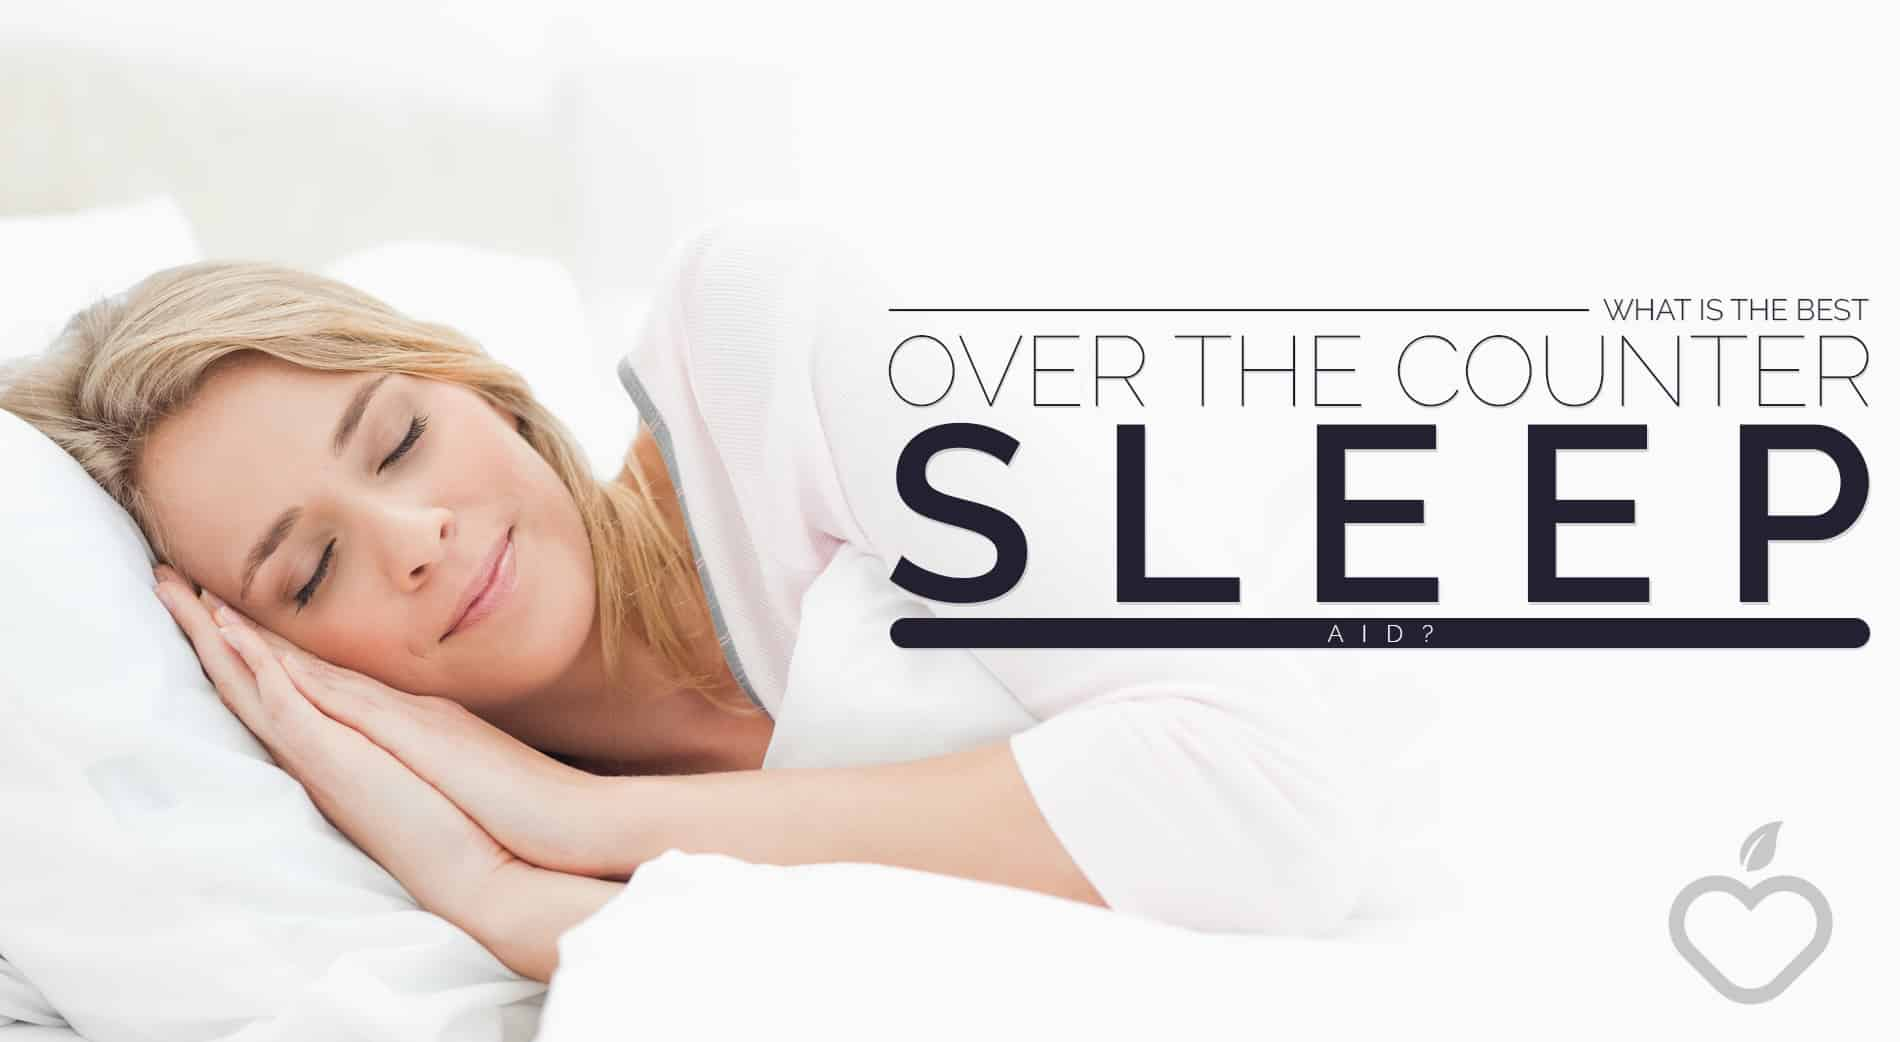 Over The Counter Sleep Aid Image Design 1 - What Is The Greatest Over The Counter Sleep Help?